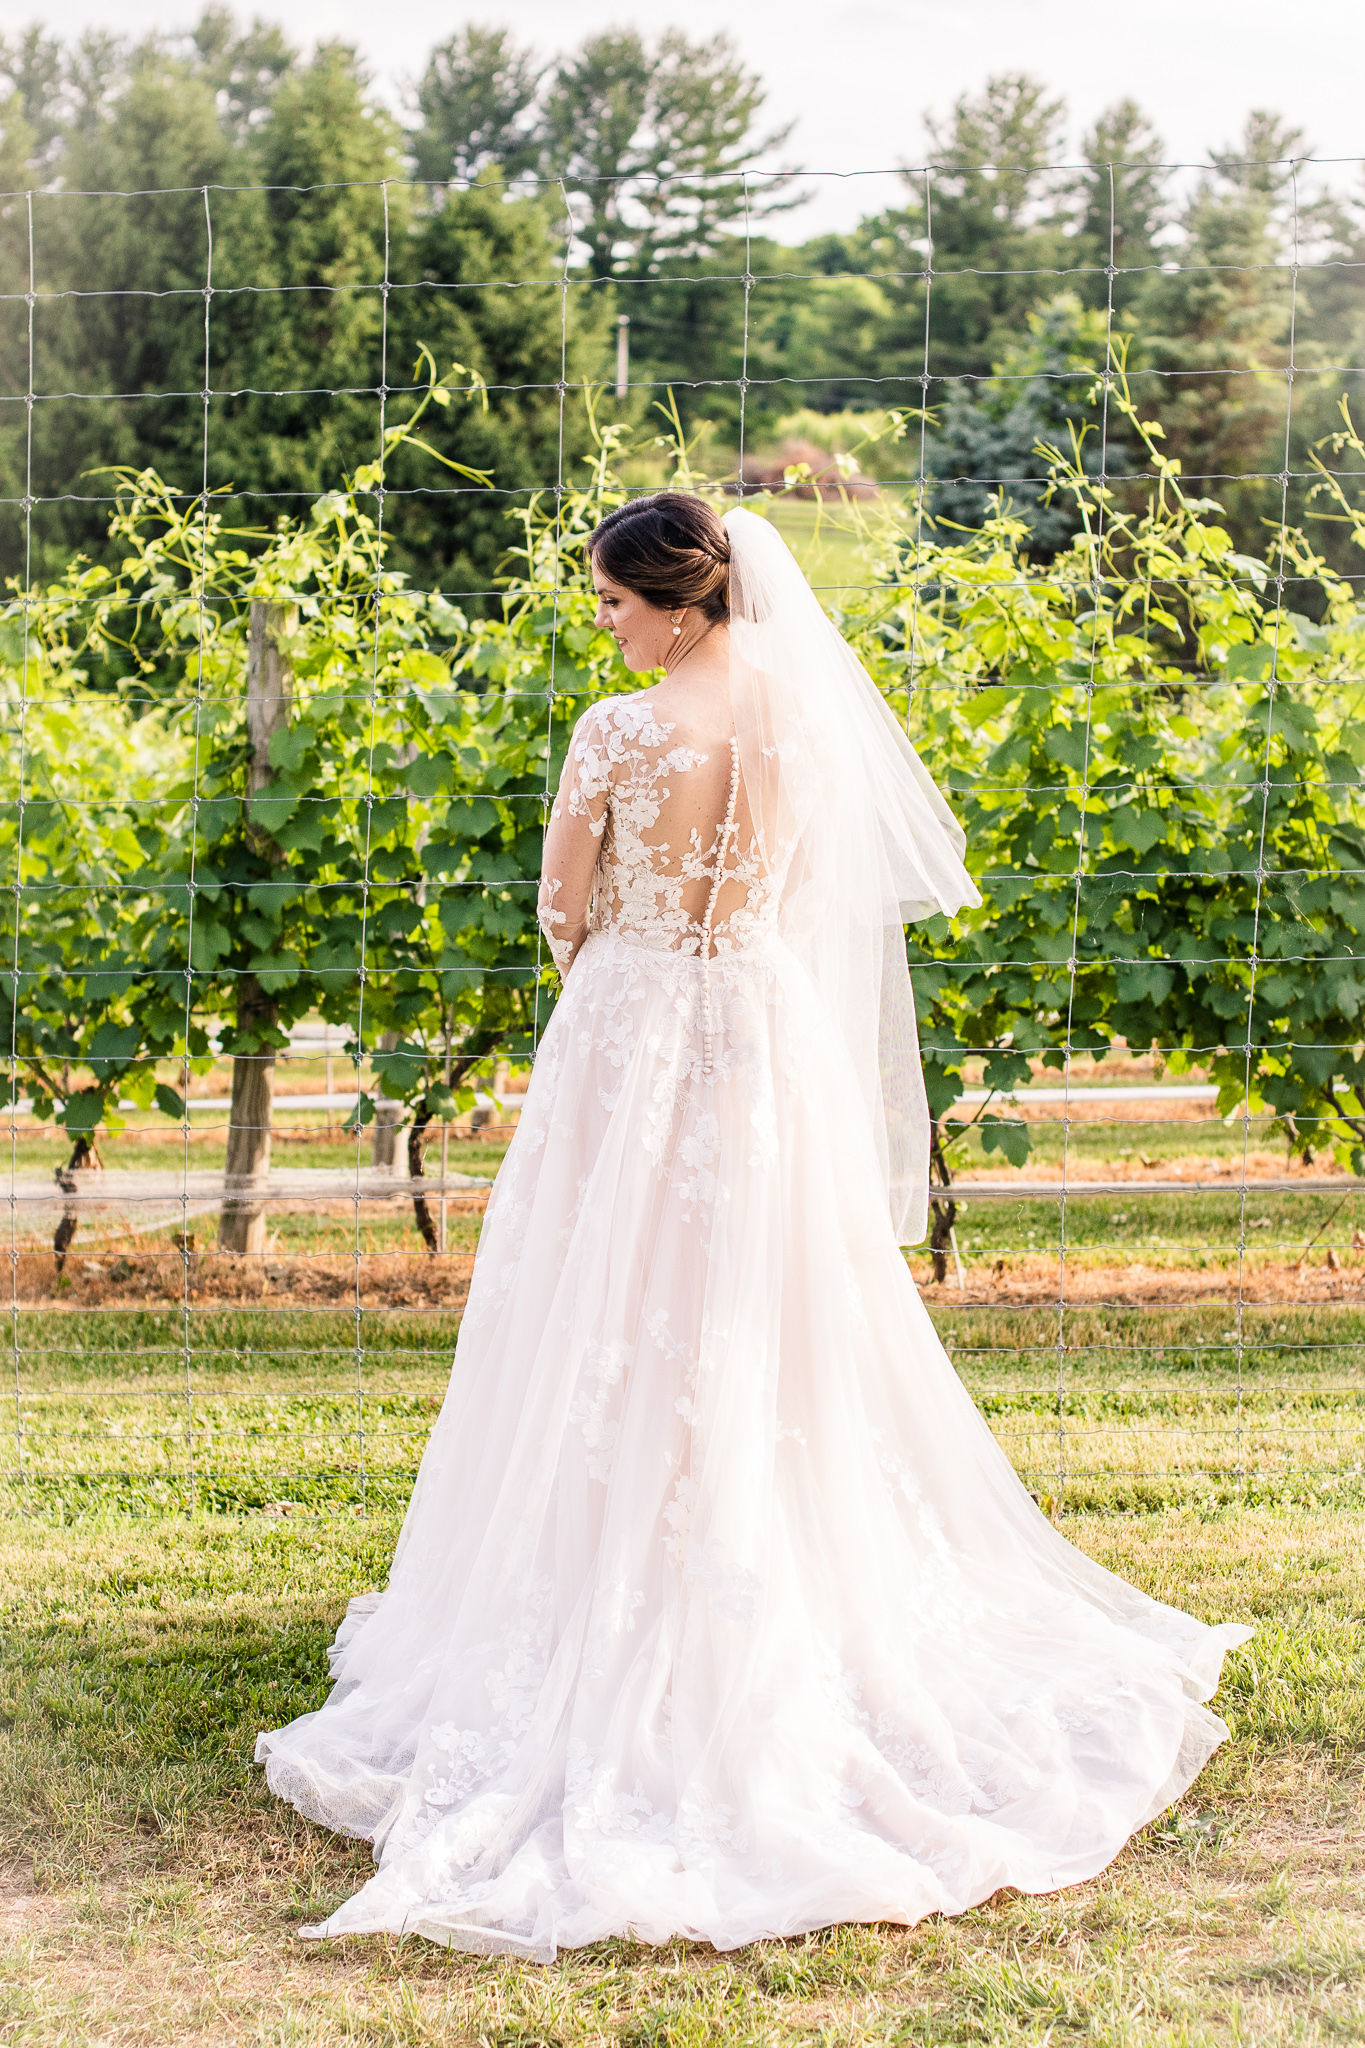 A classic bride in a modest lace wedding dress poses for a portrait showing off the back of her dress in the vineyards at The Barns at Hamilton Station Vineyard in Leesburg, Northern Virginia